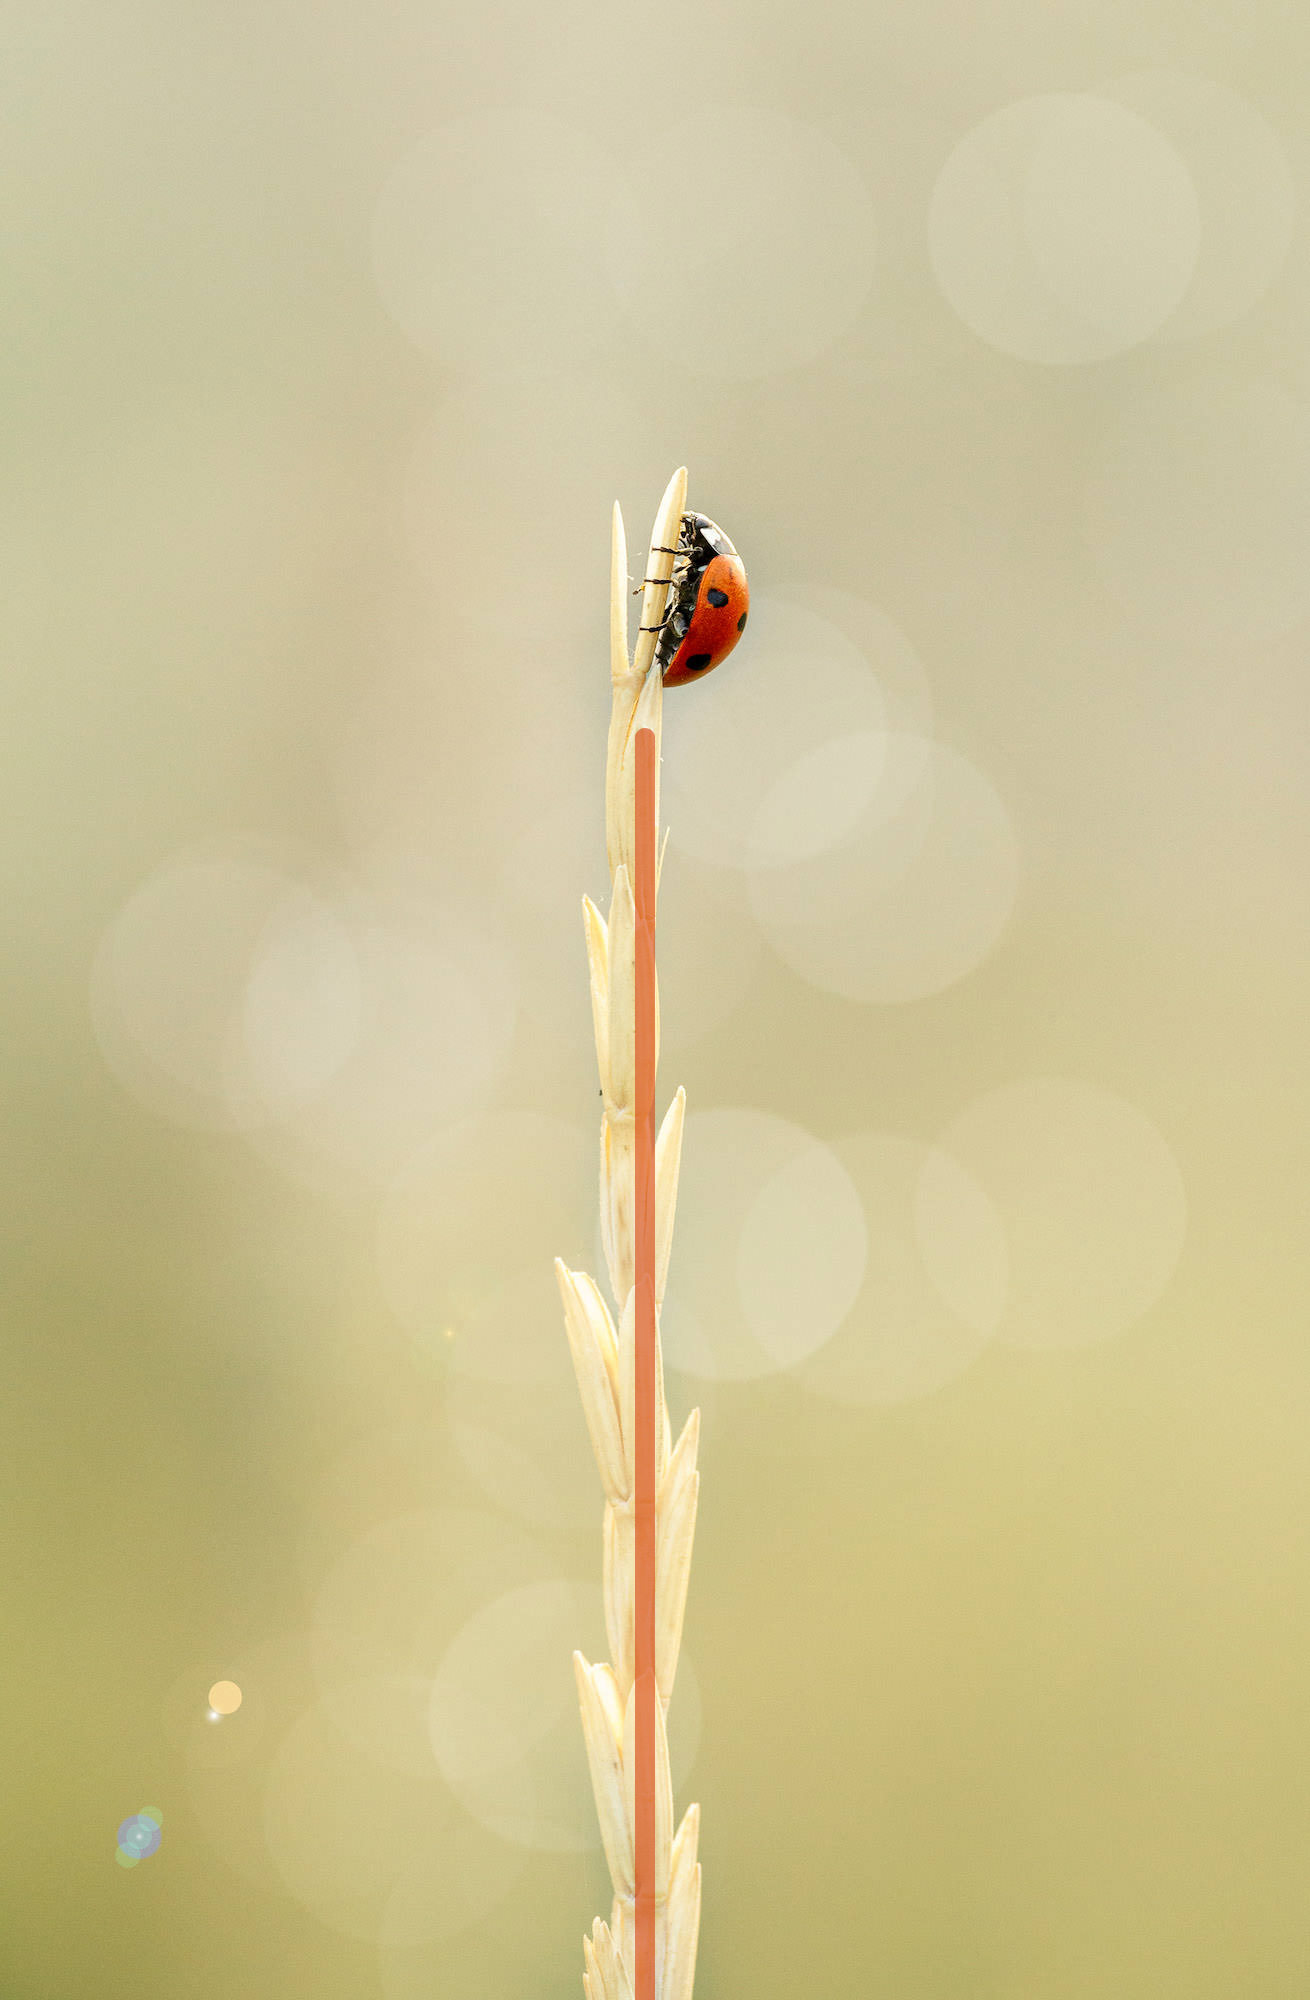 Ladybug Coccinella septempunctata resting on a dry blade of grass with an added leading line to show the compositional tecnhique